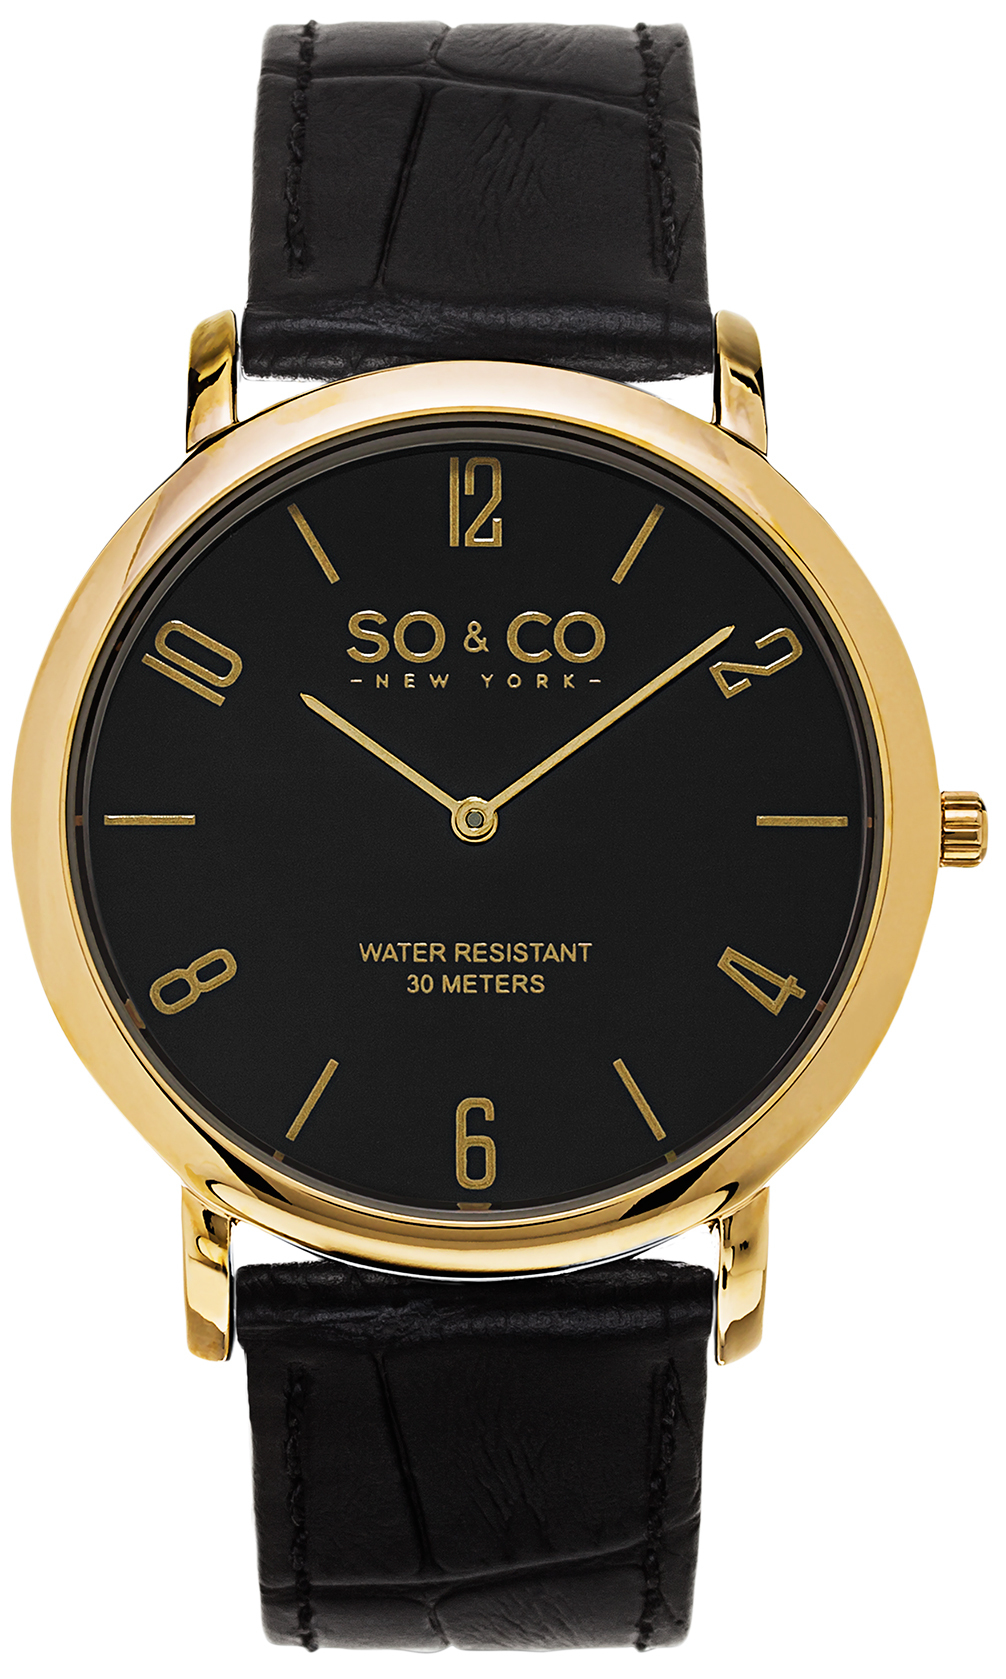 So & Co New York Madison Herreur 5043.3 Sort/Læder Ø39 mm